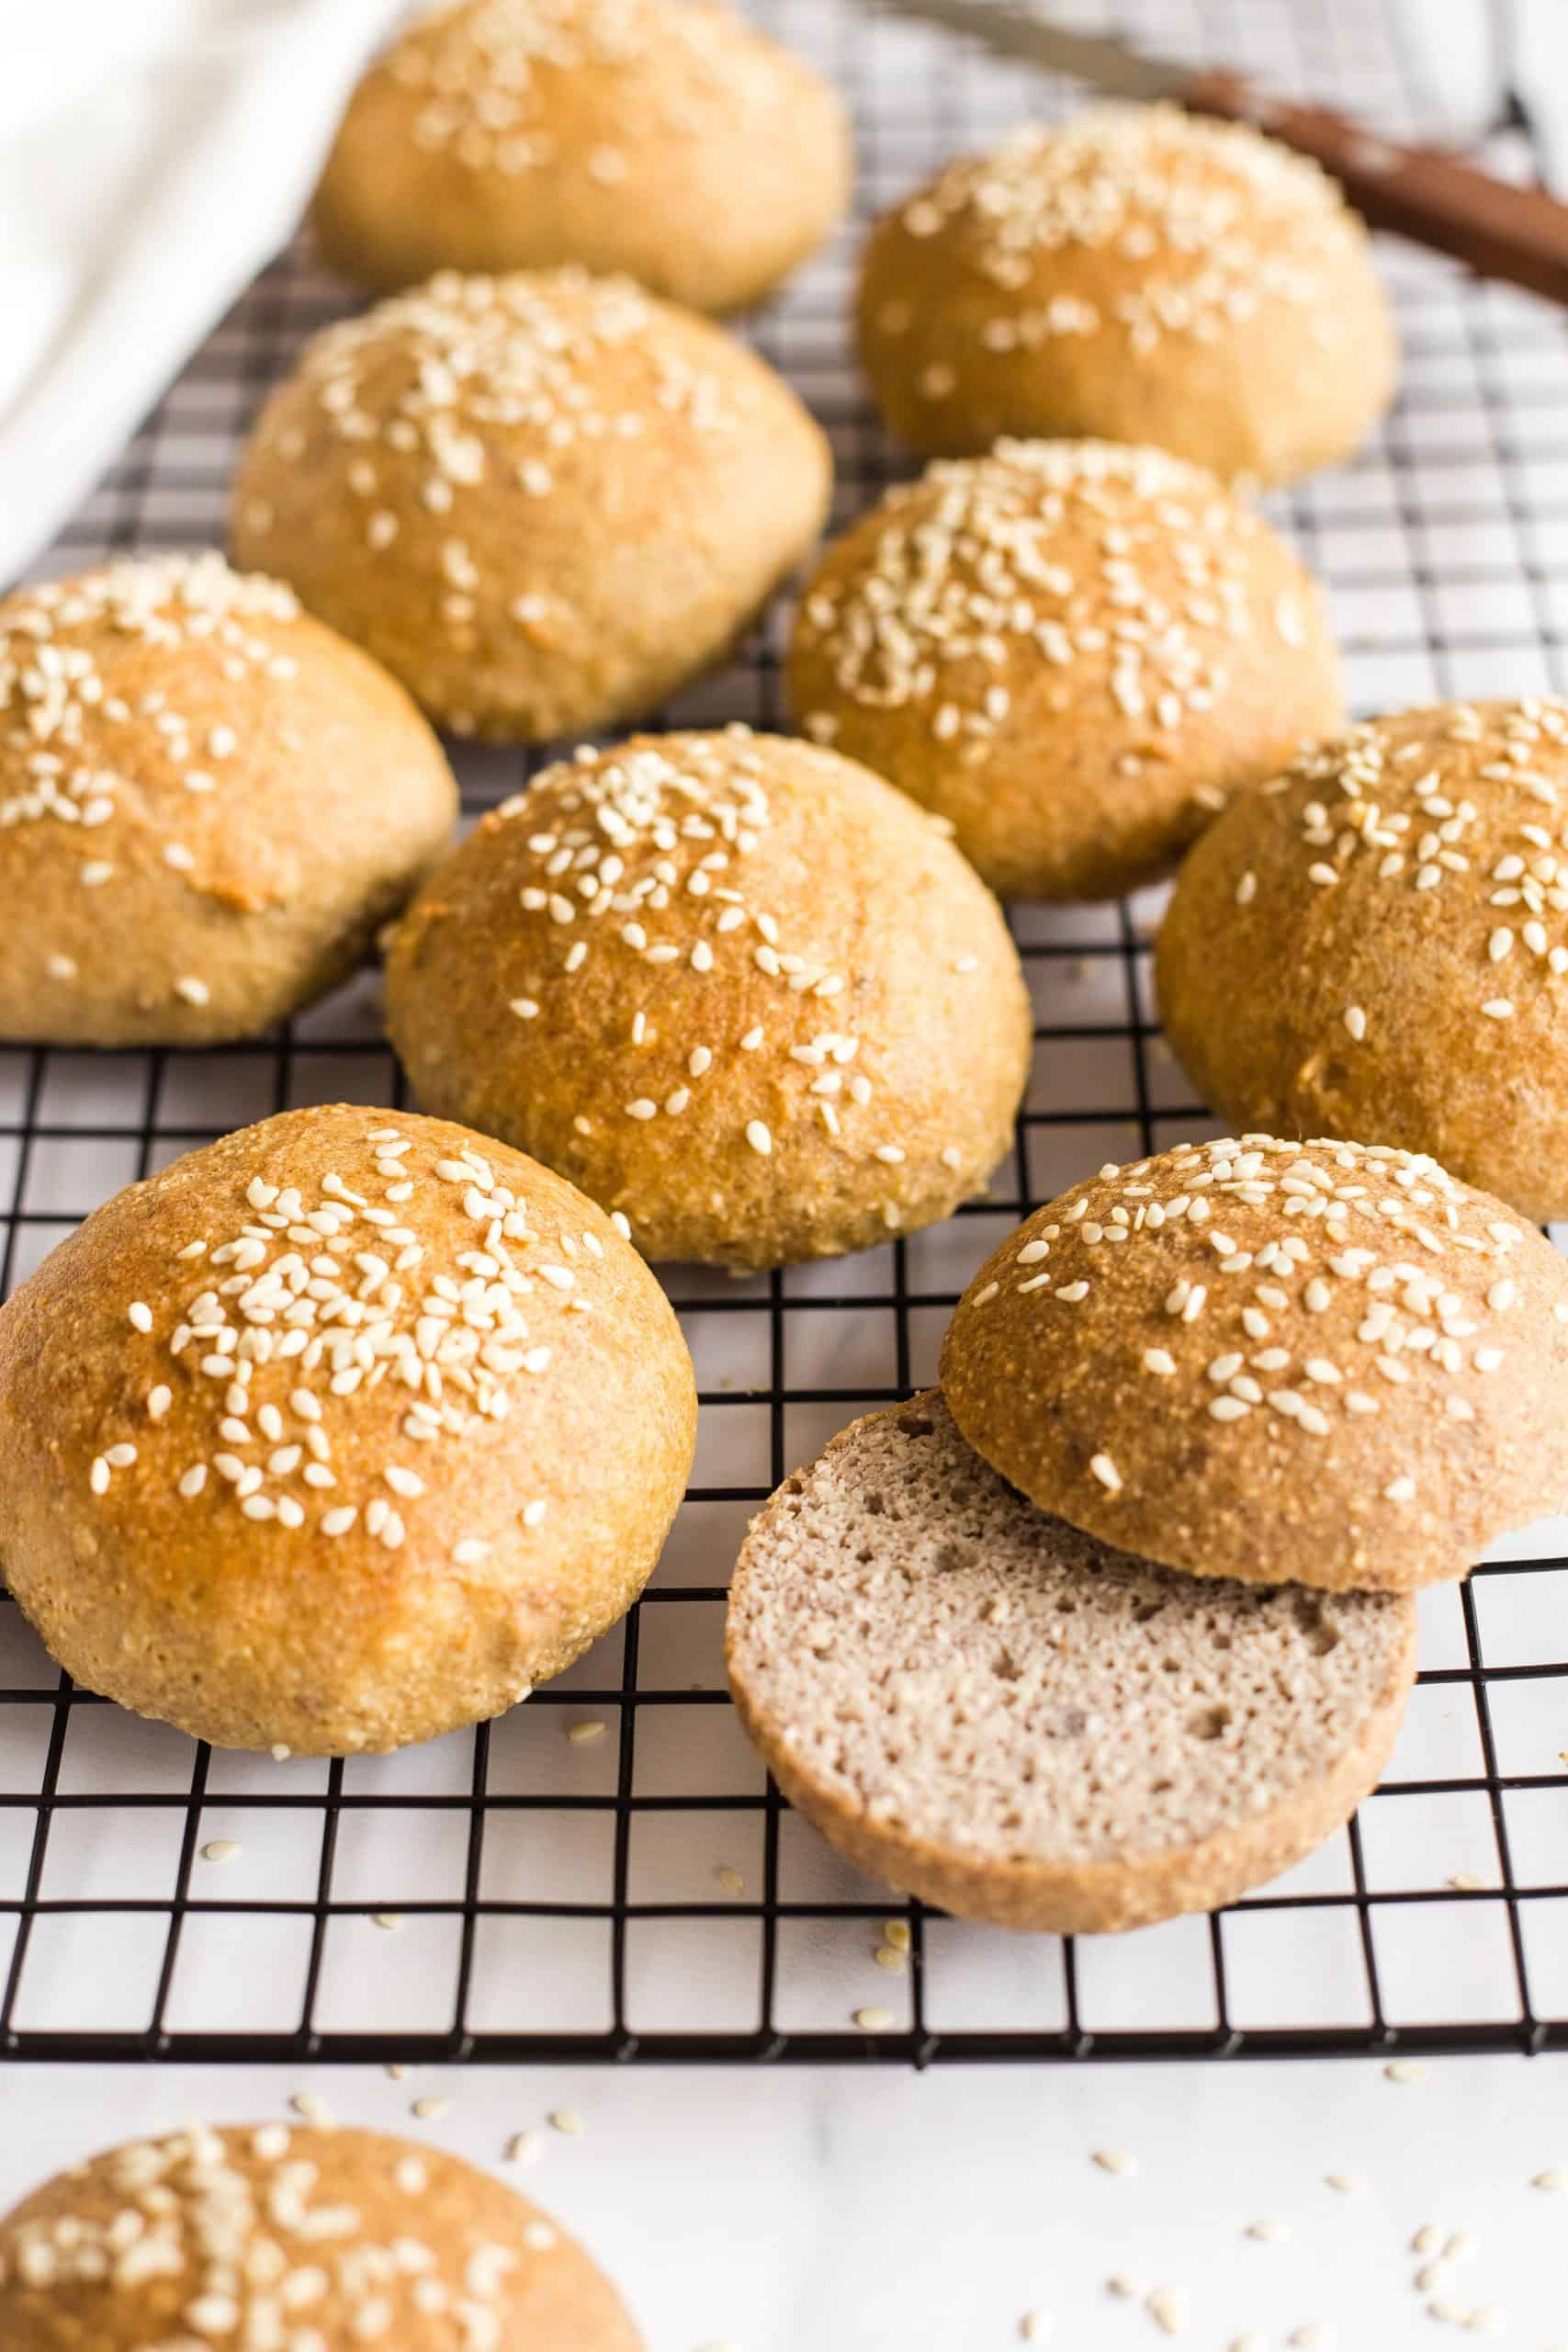 Sliced sesame buns on a cooling rack.